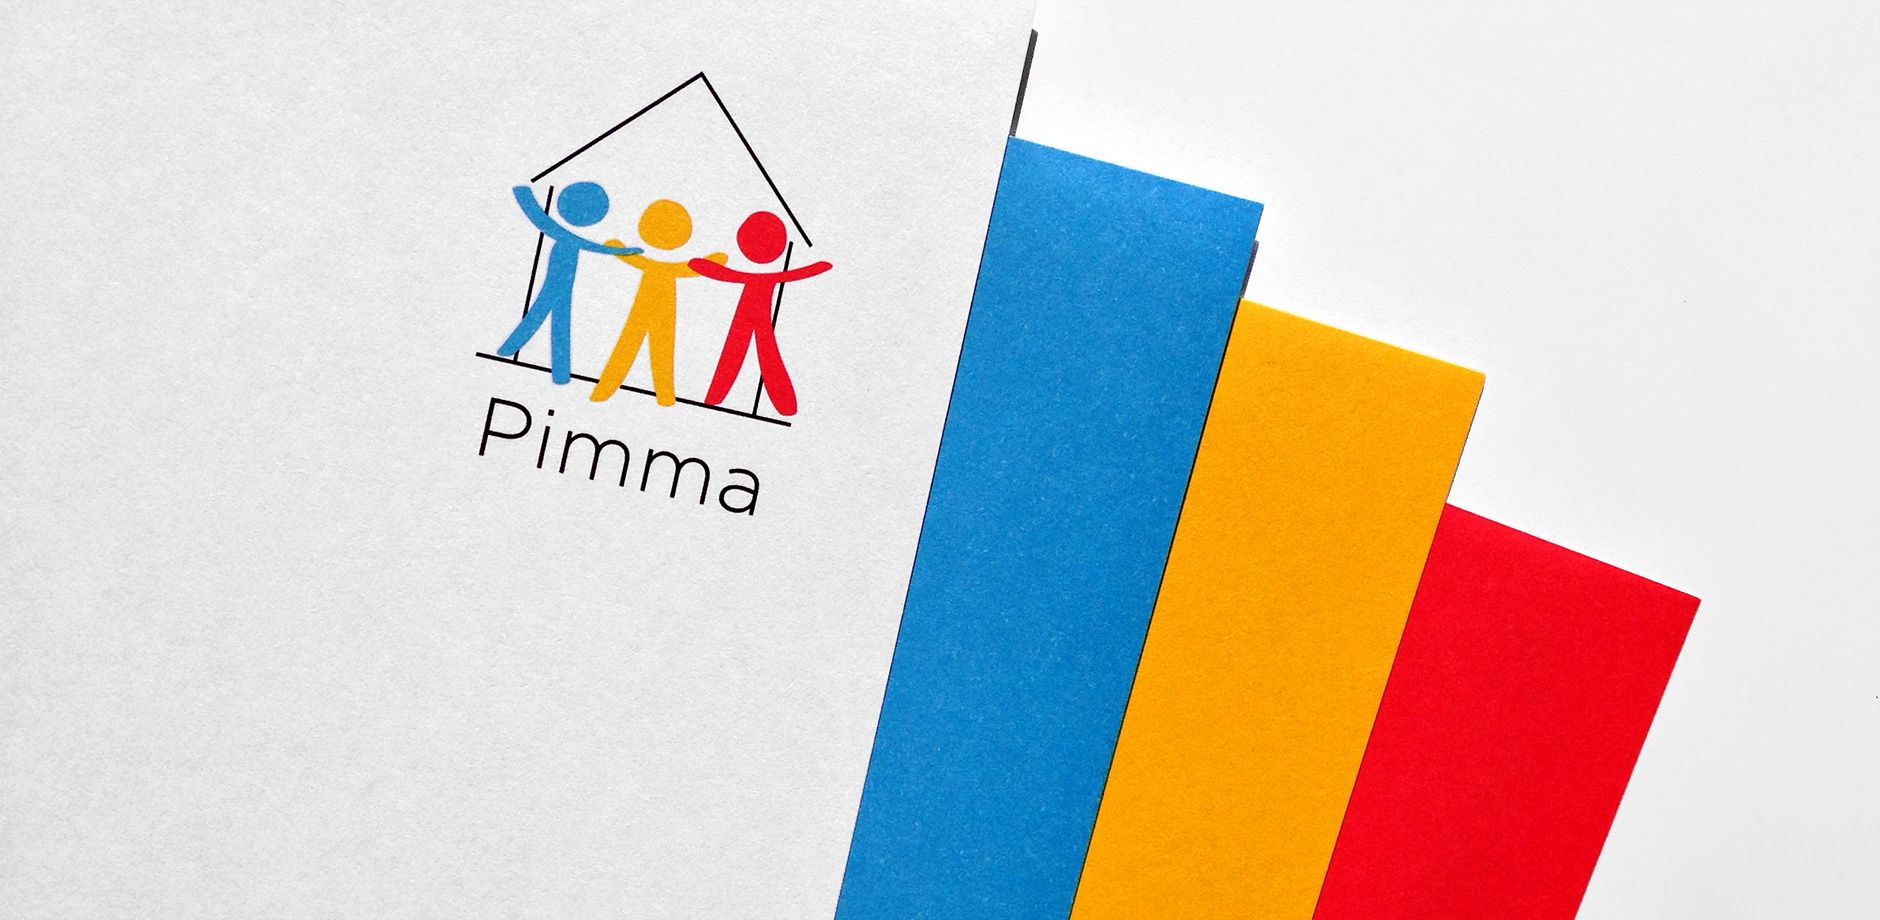 Stationary Pimma by Saus